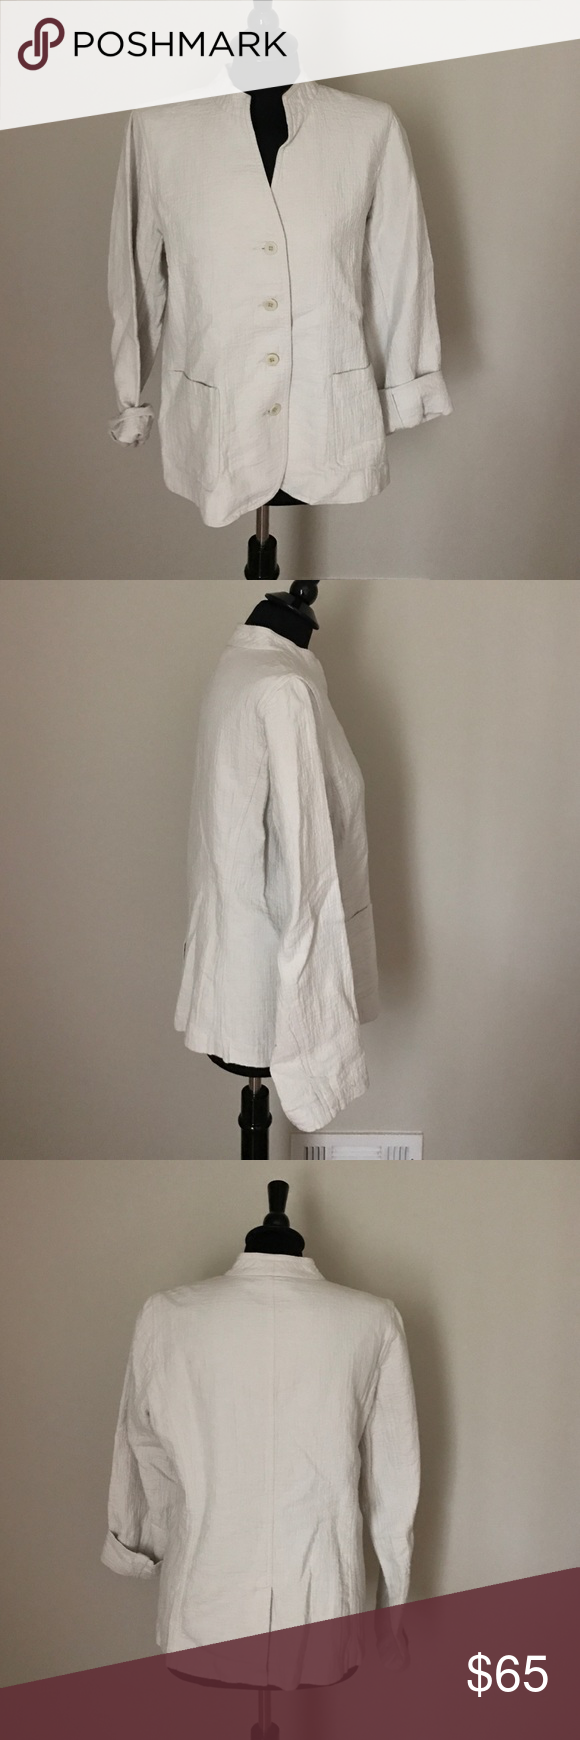 Eileen Fisher Linen Jacket Gently worn Eileen Fisher Jacket. Stone/Ivory color perfect for Spring. 55%Linen/45%Cotton Eileen Fisher Jackets & Coats